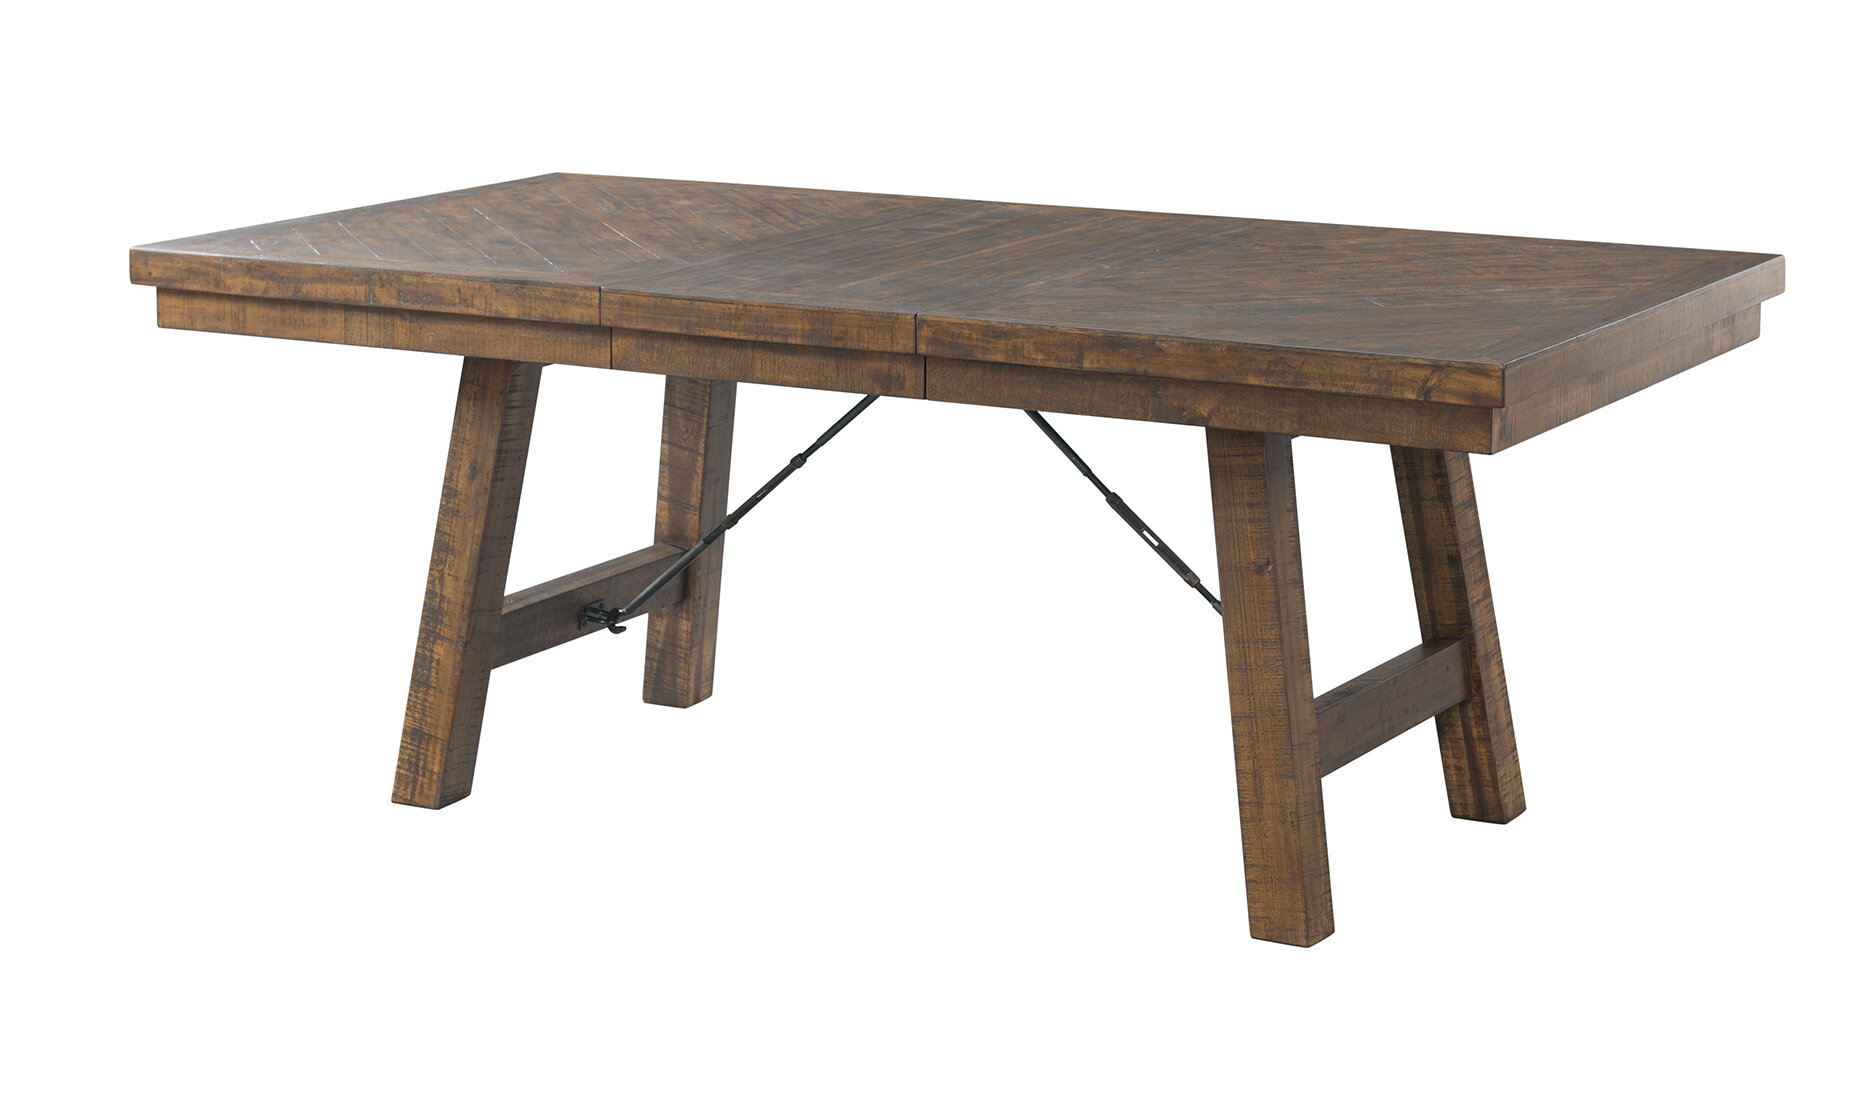 Laurel Foundry Modern Farmhouse Dearing Dining Table & Reviews | Wayfair